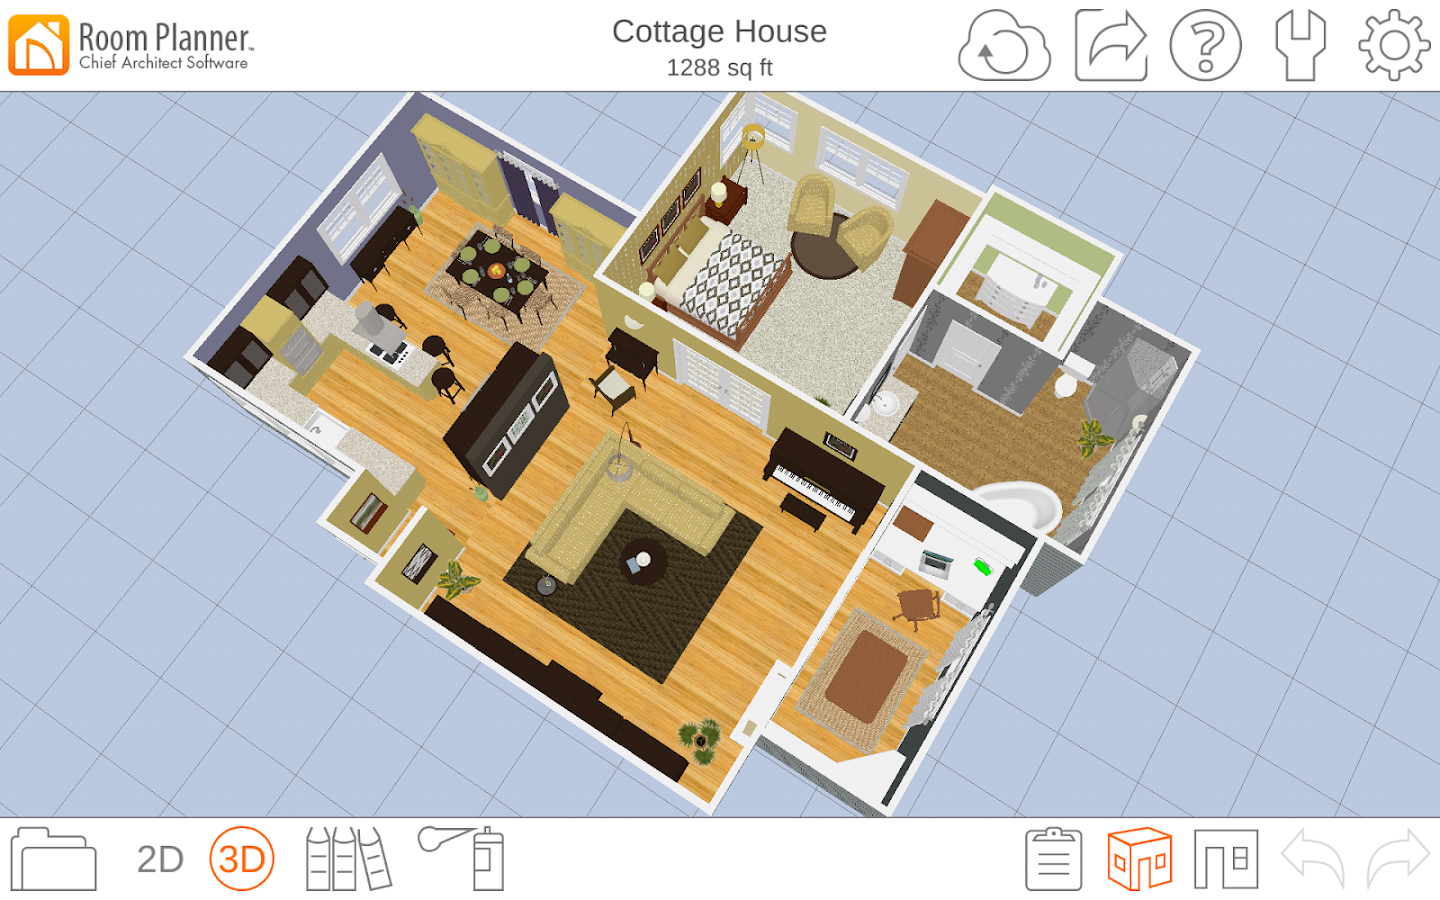 Room Planner Home Design - Android Apps on Google Play